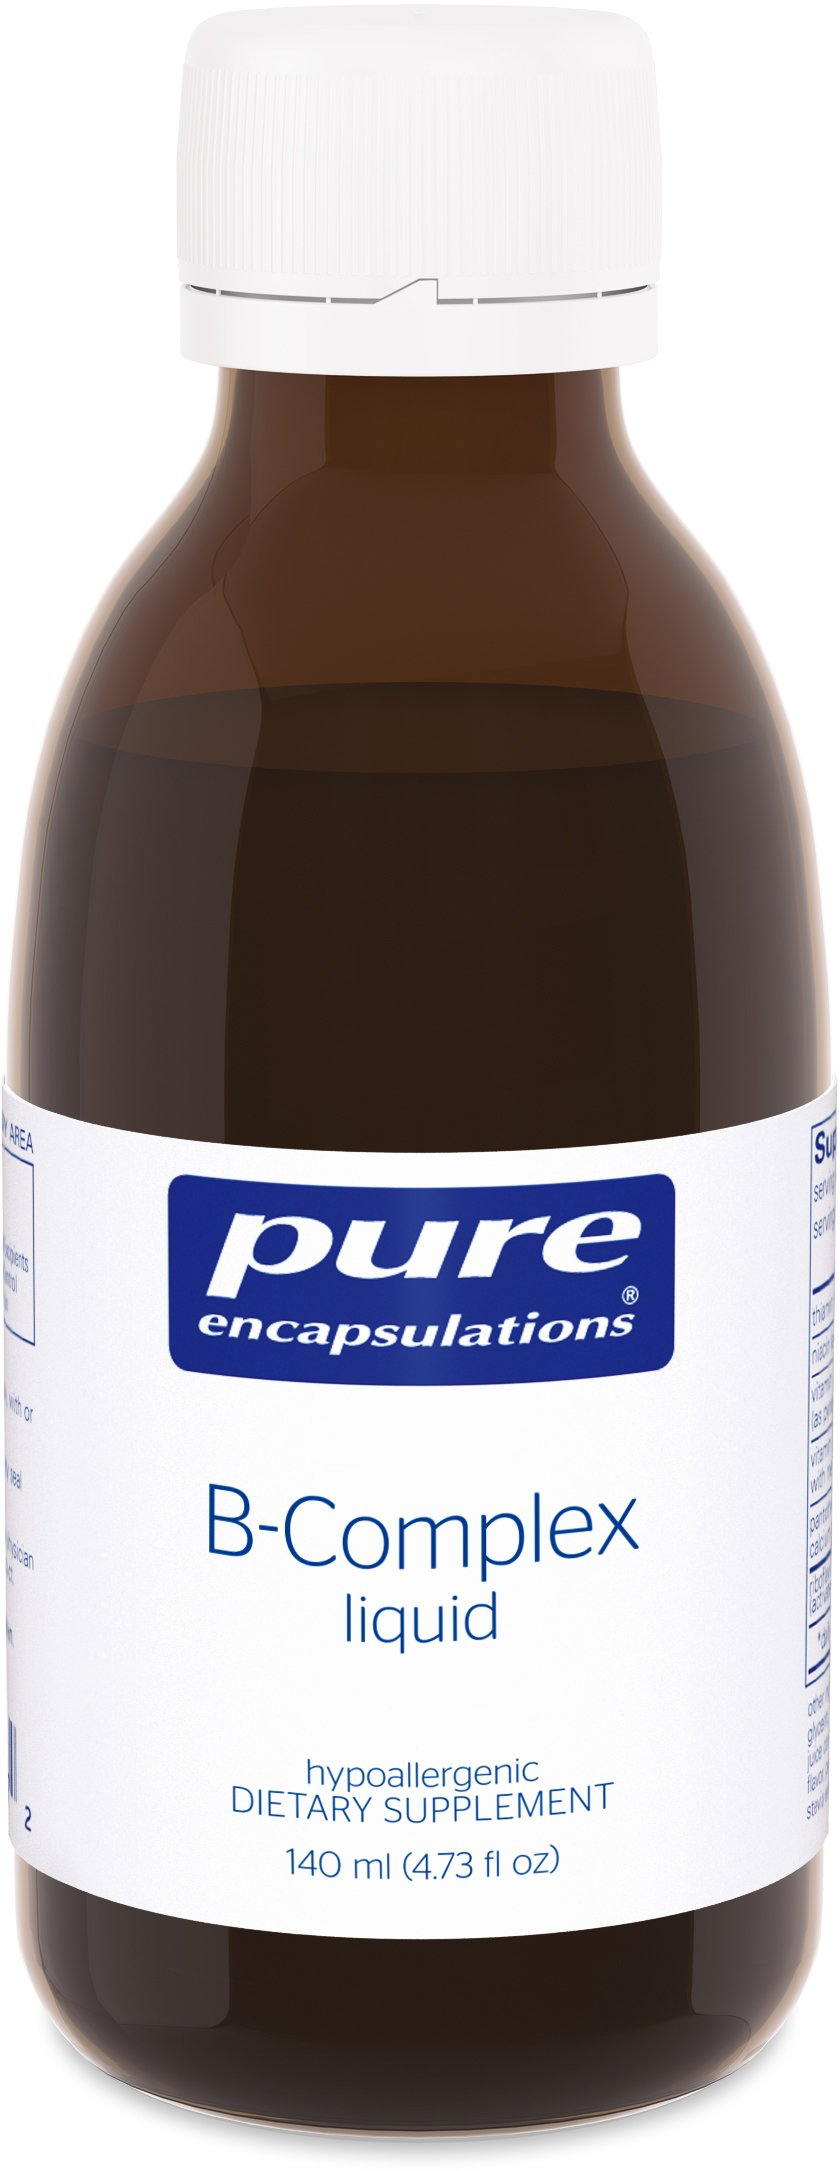 Pure Encapsulations - B-Complex Liquid - Hypoallergenic Supplement to Support Energy Metabolism and Nervous System Function* - 116 ml (3.9 fl oz)